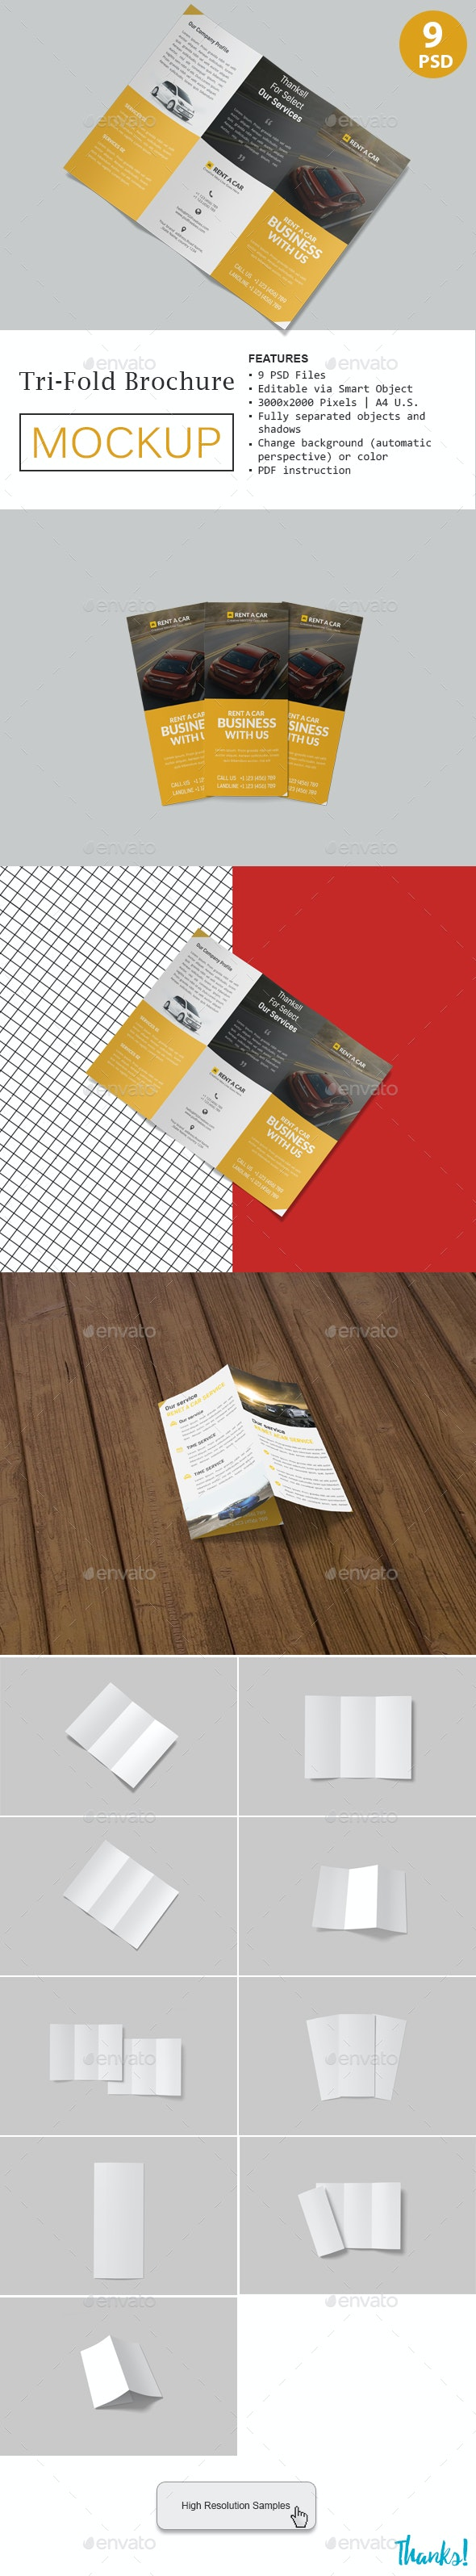 Trifold Brochure Mockup - Product Mock-Ups Graphics